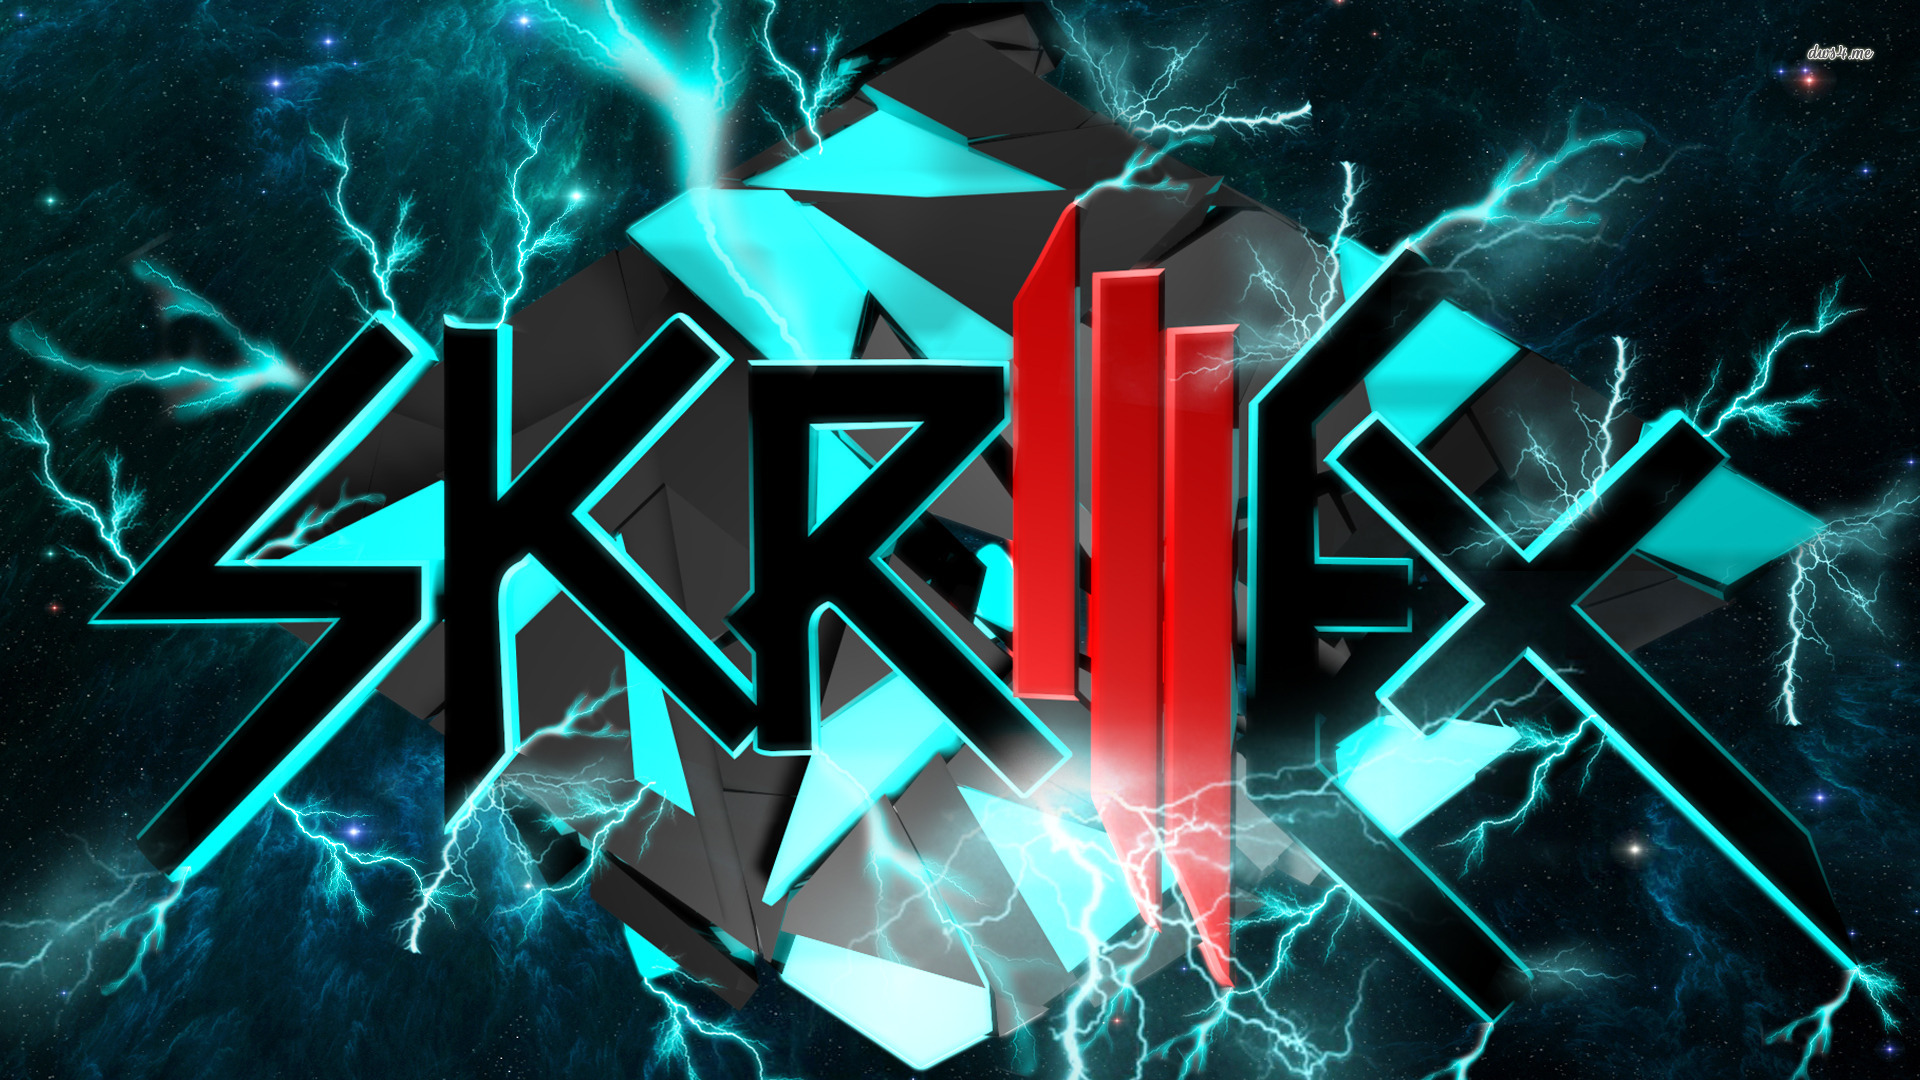 Full HD p Skrillex Wallpapers HD, Desktop Backgrounds 1920x1080